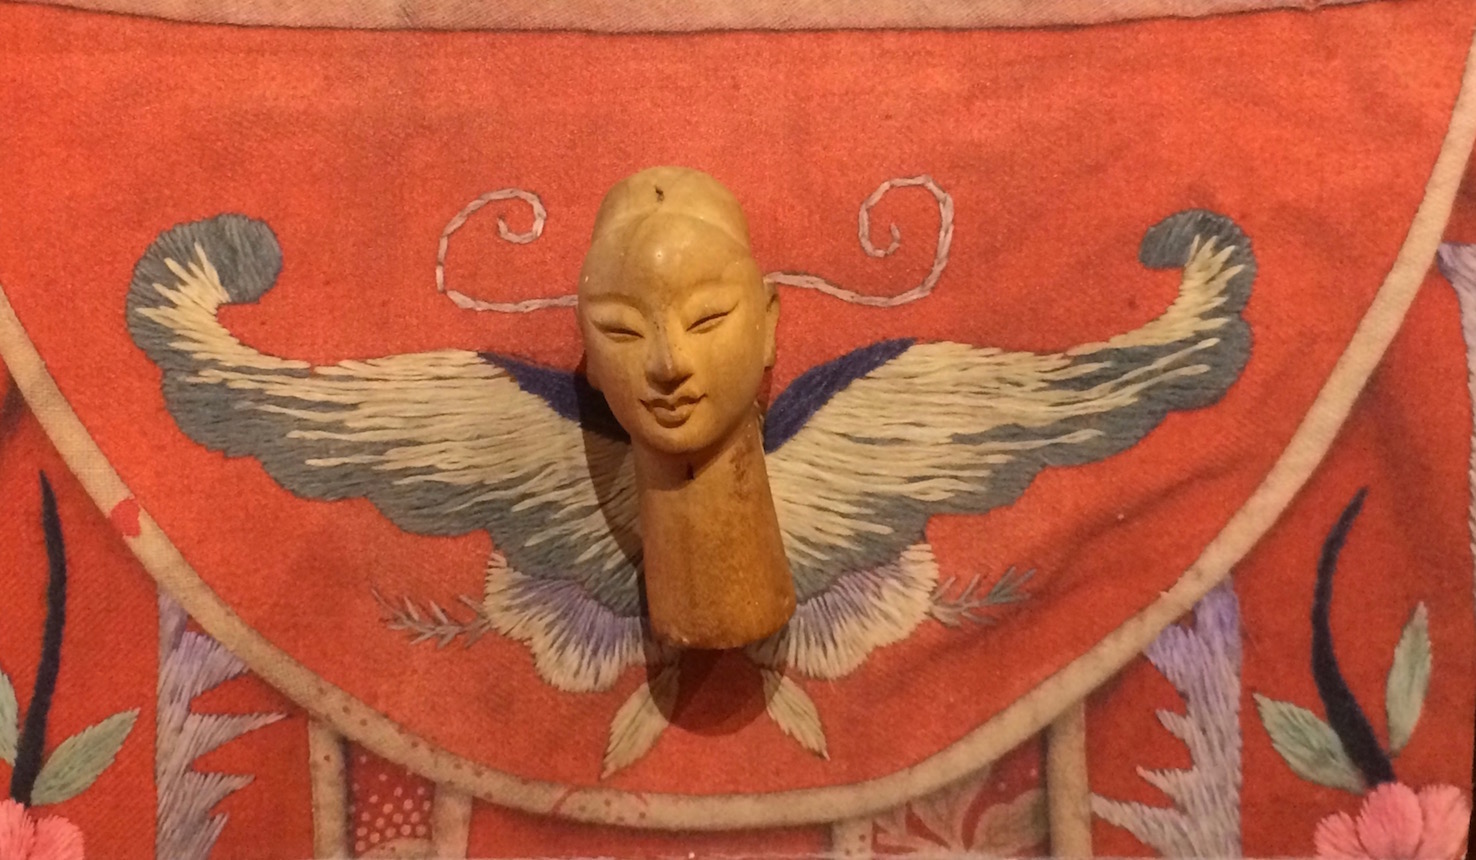 Winged figure featuring antique embroidery at the Puppet Museum in Taipei